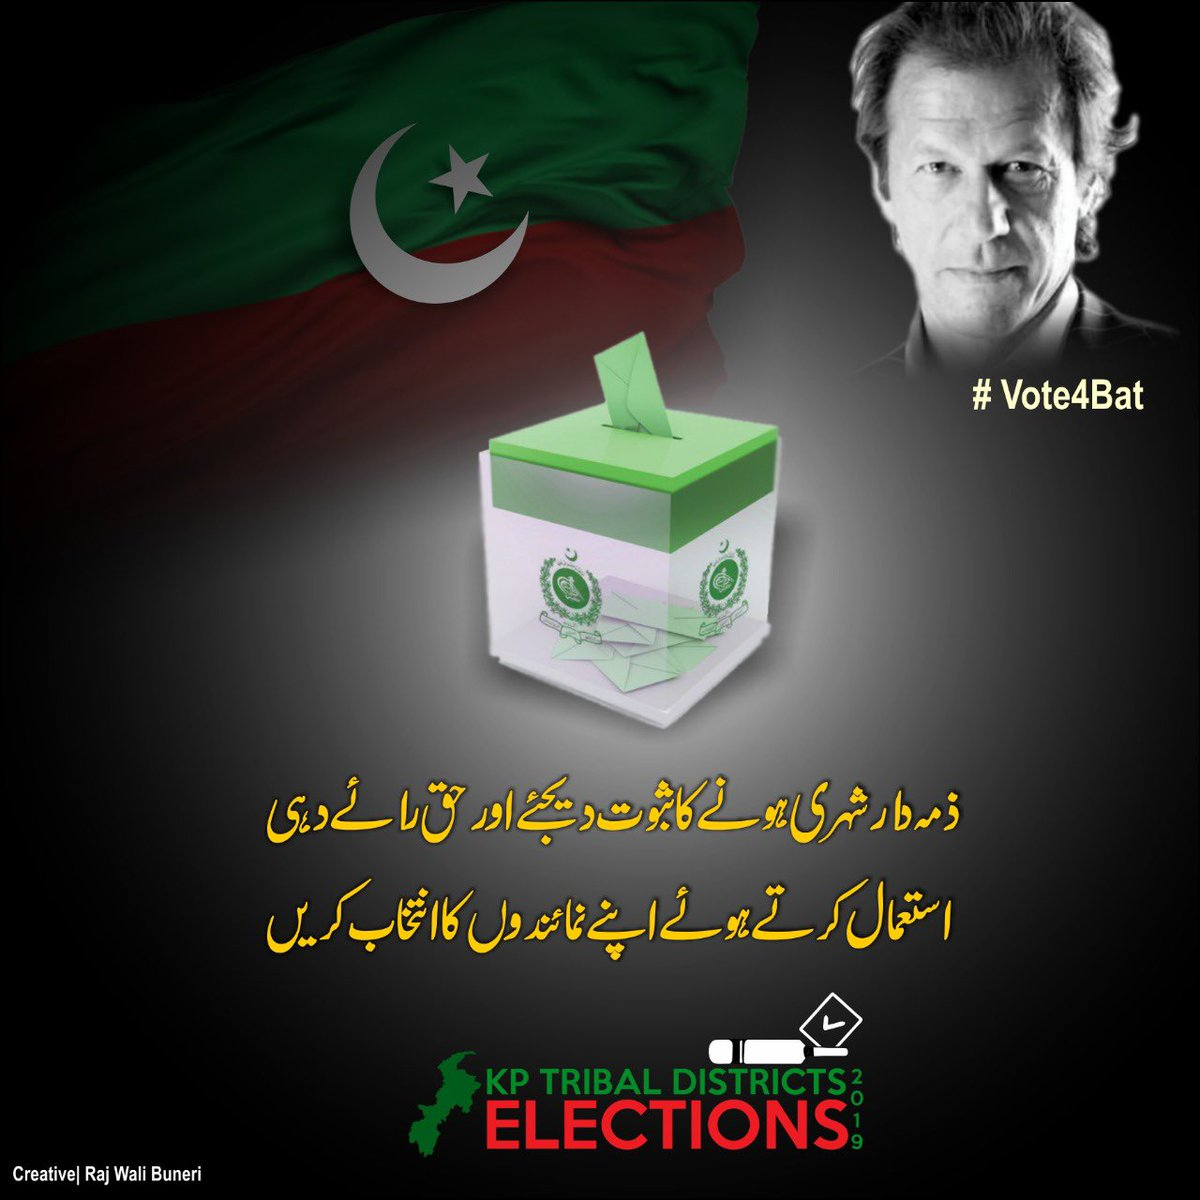 Today is very very important day for all those Pakistanis living in newly merged  KP districts to come out and vote for PTI. This will ensure @ImranKhanPTI that whole pashtun are standing behind him like a rock.   Kill all propaganda of PTM and support PTI.   #Vote4Bat<br>http://pic.twitter.com/cwq20N2gI9